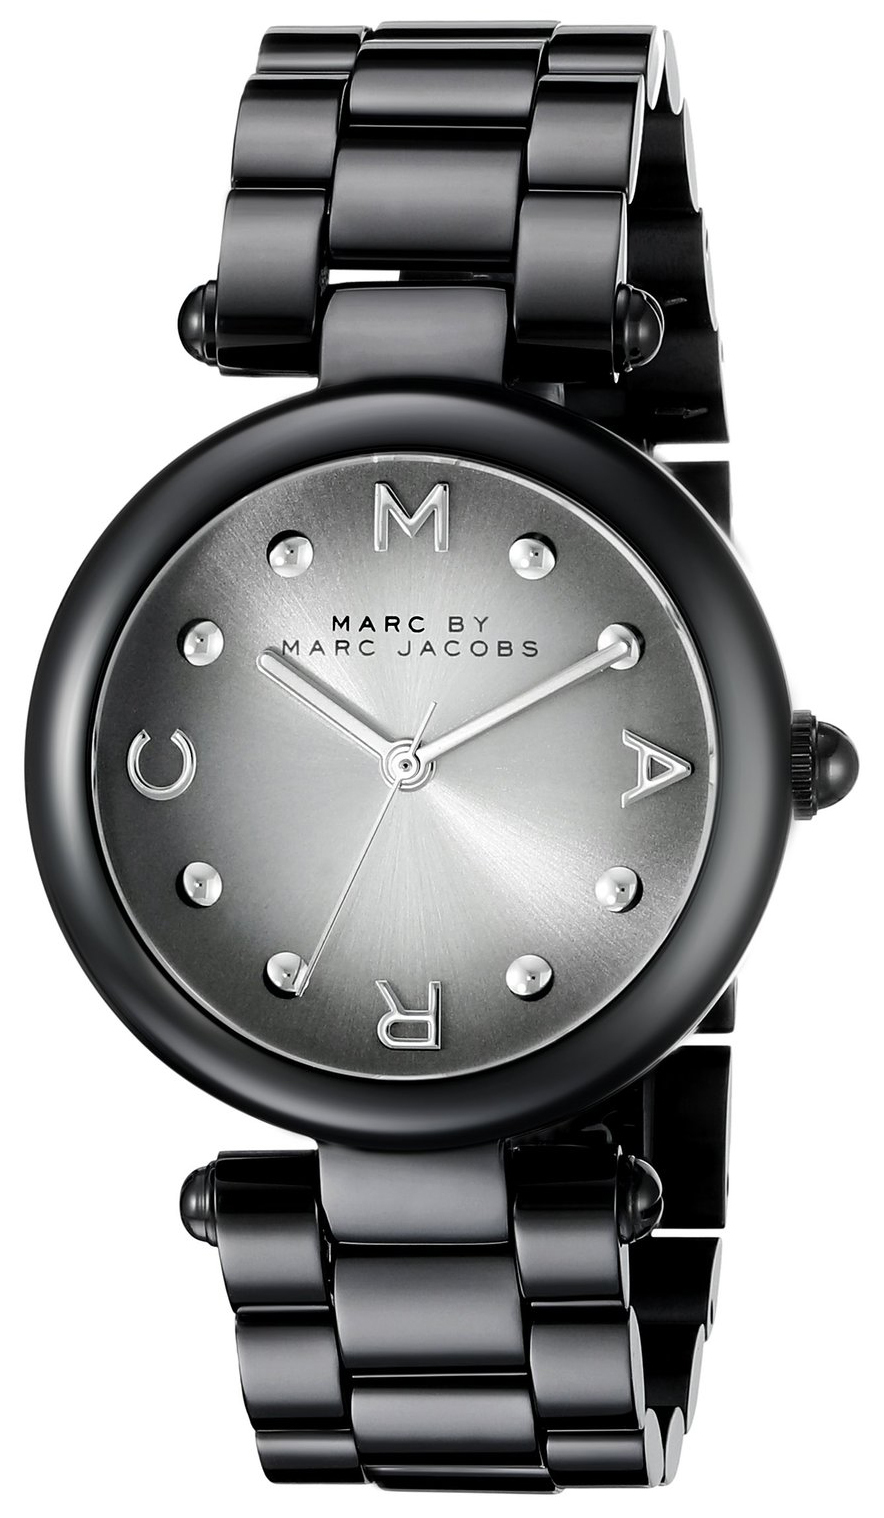 Marc by Marc Jacobs Dress Damklocka MJ3450 Svart/Stål Ø34 mm - Marc by Marc Jacobs